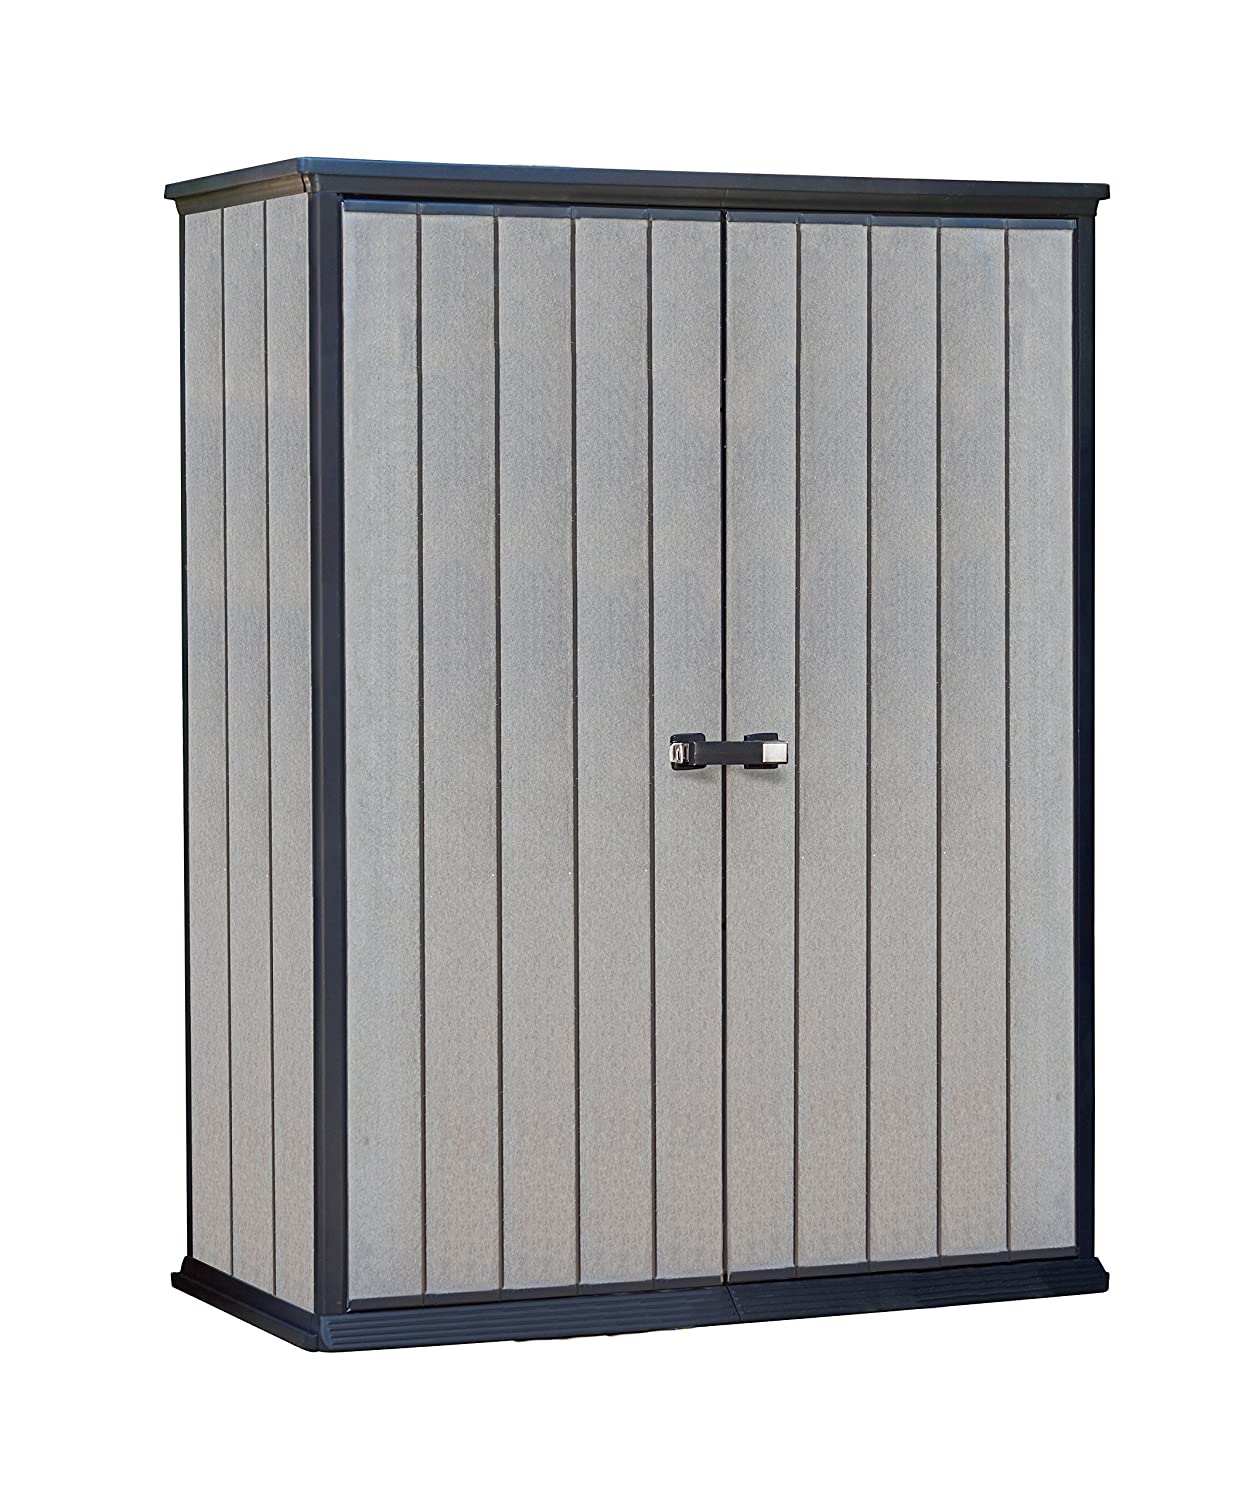 Amazon.com : Keter High Store 4.5 X 2.5 Vertical Outdoor Resin Storage Shed,  Grey : Garden U0026 Outdoor